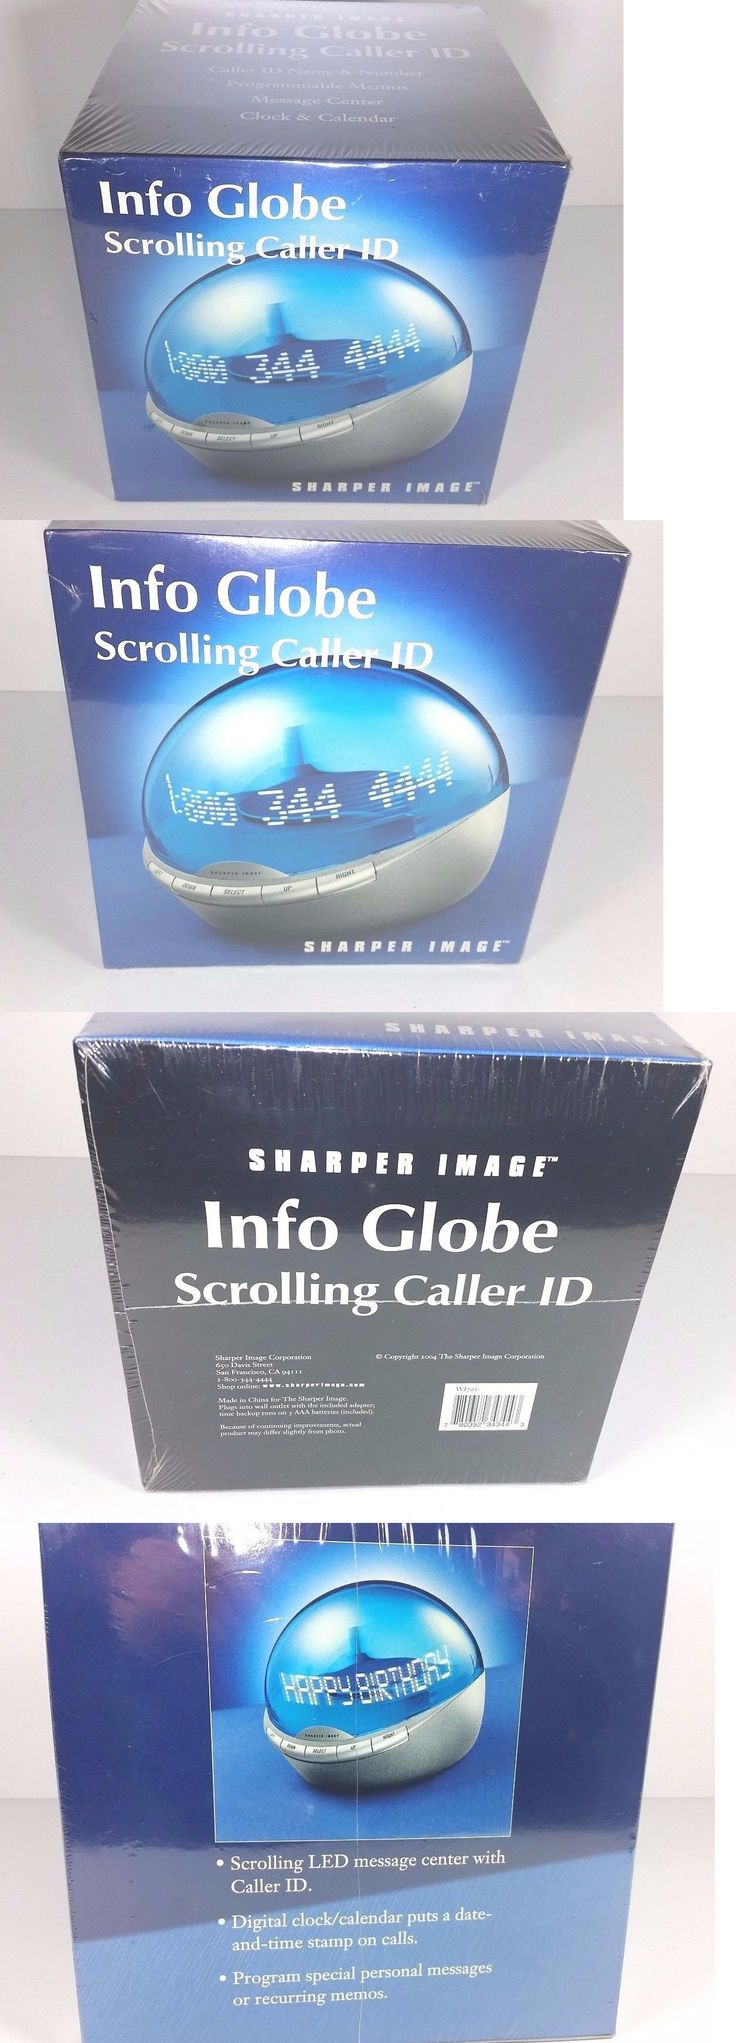 Caller ID Devices: Sharper Image Info Globe Scrolling Caller Id Caller Id Display New Sealed -> BUY IT NOW ONLY: $125 on eBay!